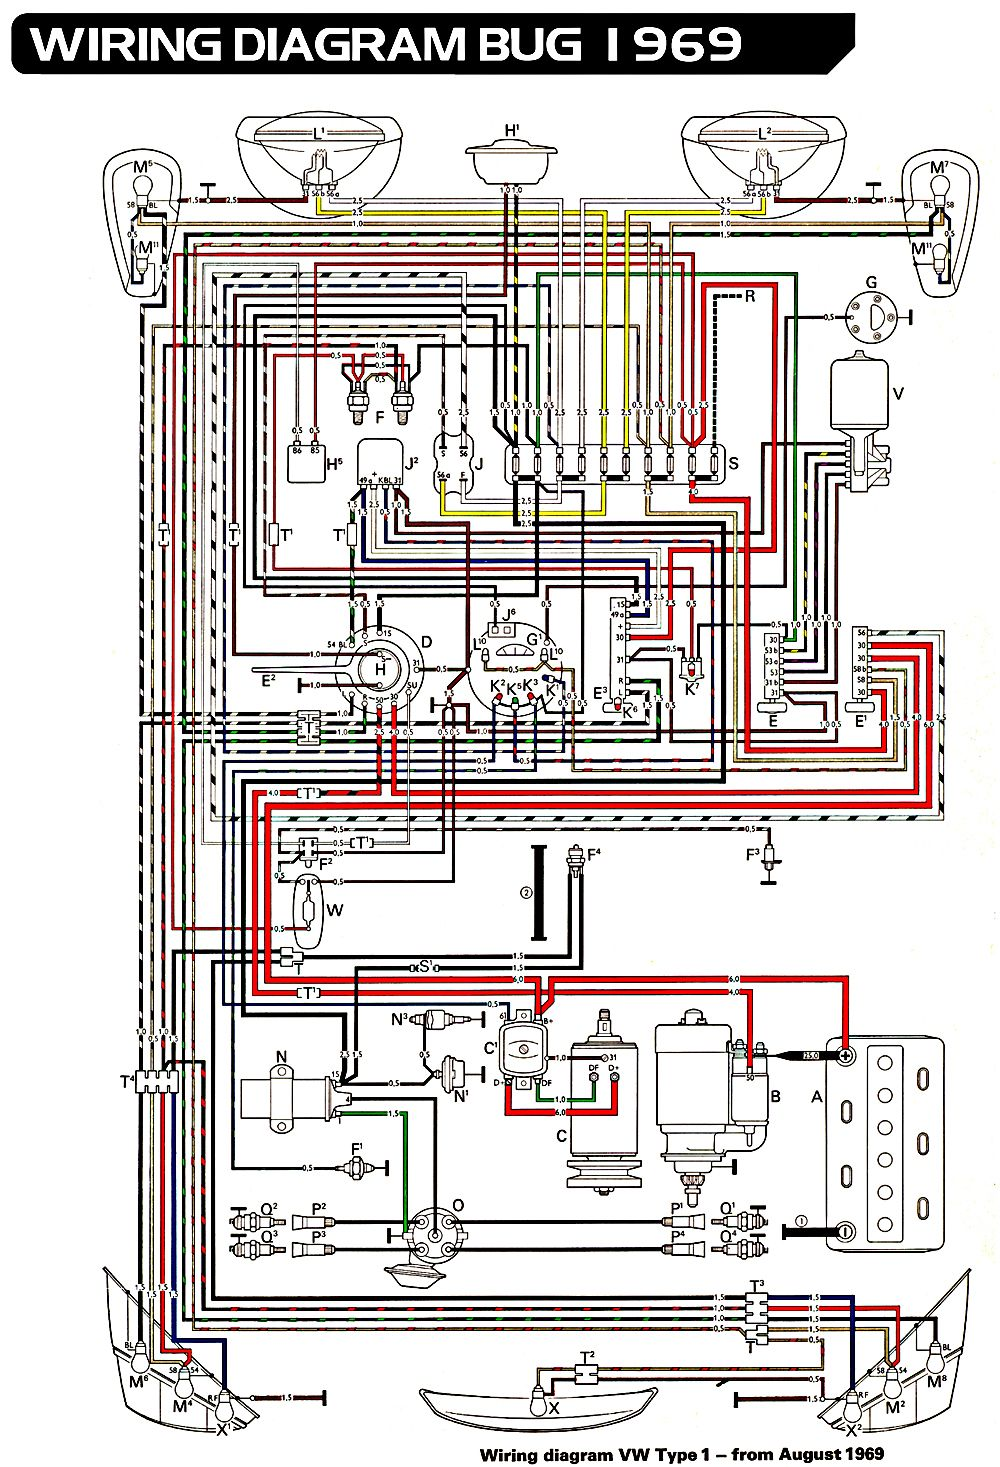 6d75c15875479254f26a32a8499d9044 vw type 1 wiring diagram 1961 vw type 1 wiring diagram \u2022 wiring vw type 3 wiring harness at readyjetset.co